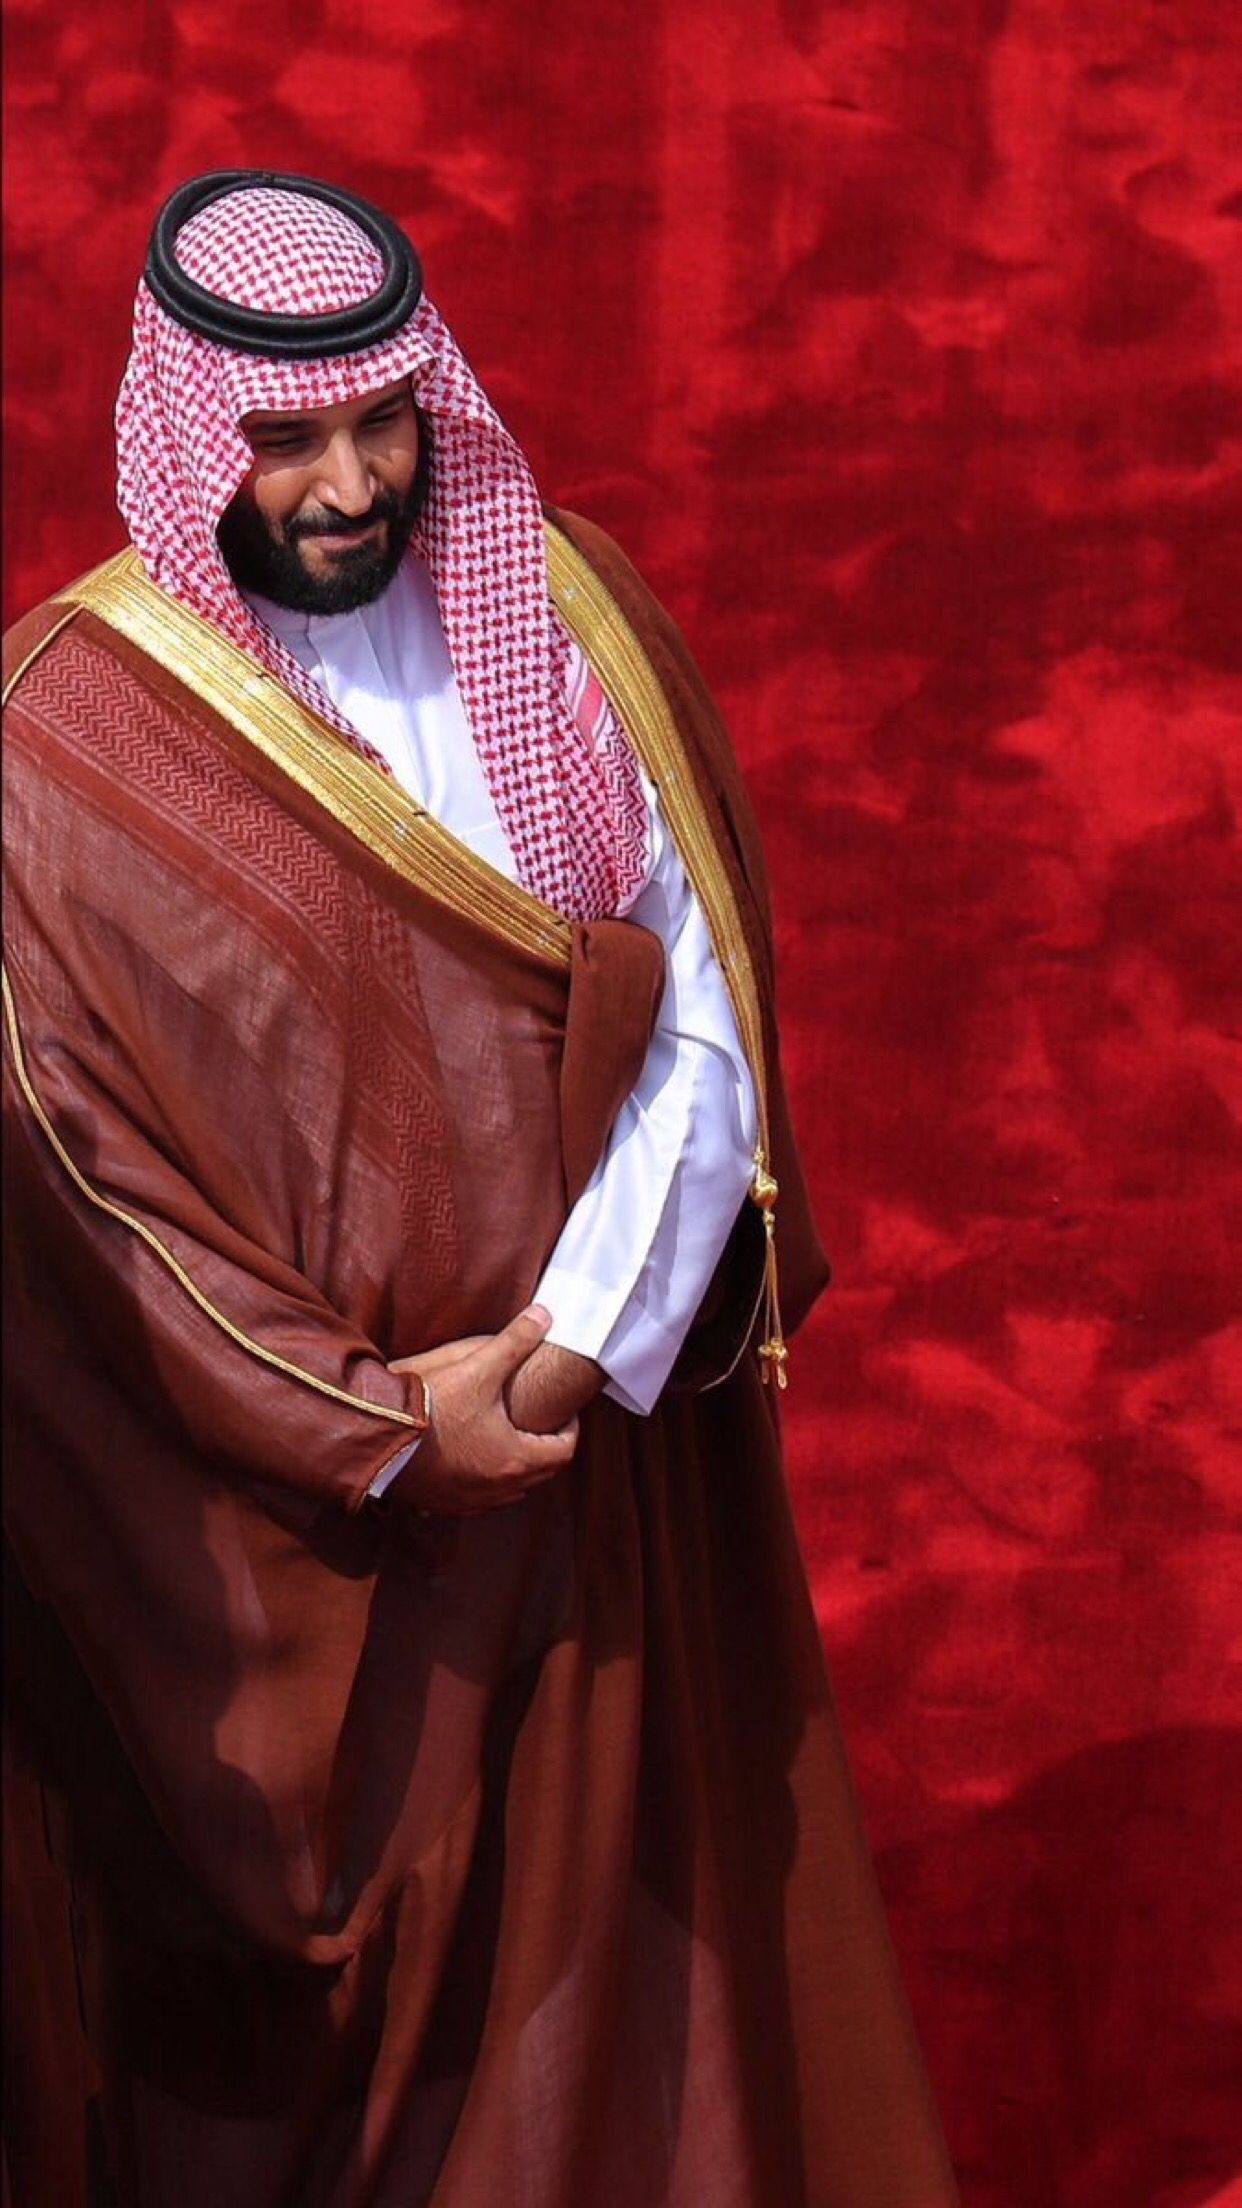 ولي العهد محمد بن سلمان National Day Saudi Ksa Saudi Arabia Prince Mohammed